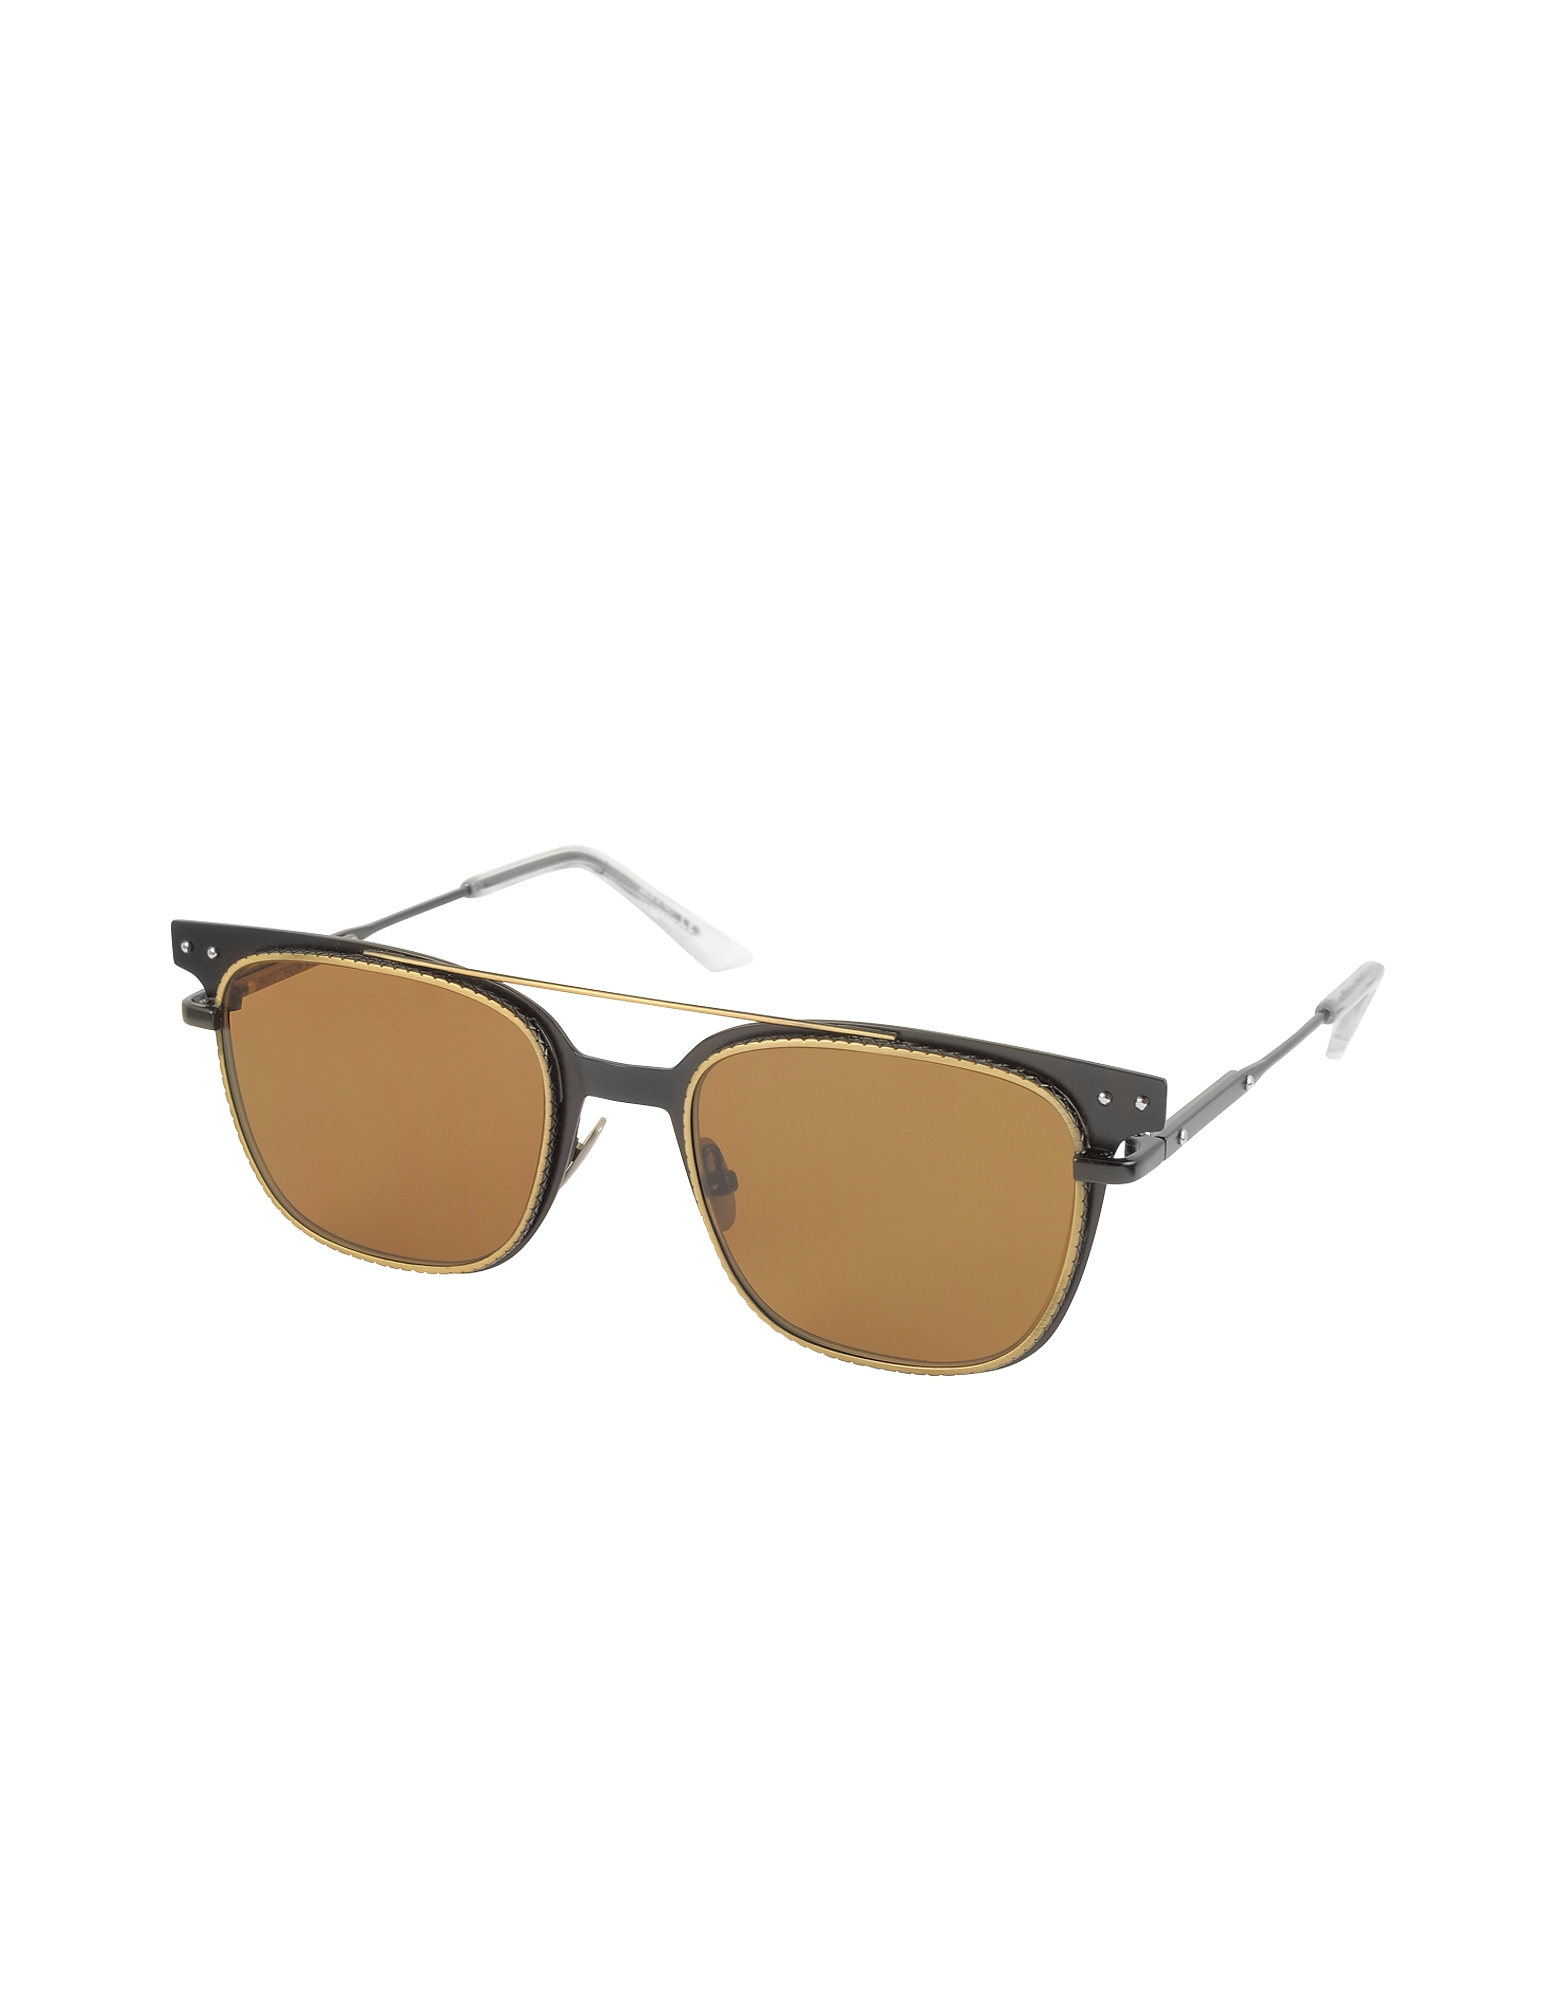 BV0095S 002 Black Metal Frame Men's Sunglasses от Forzieri.com INT